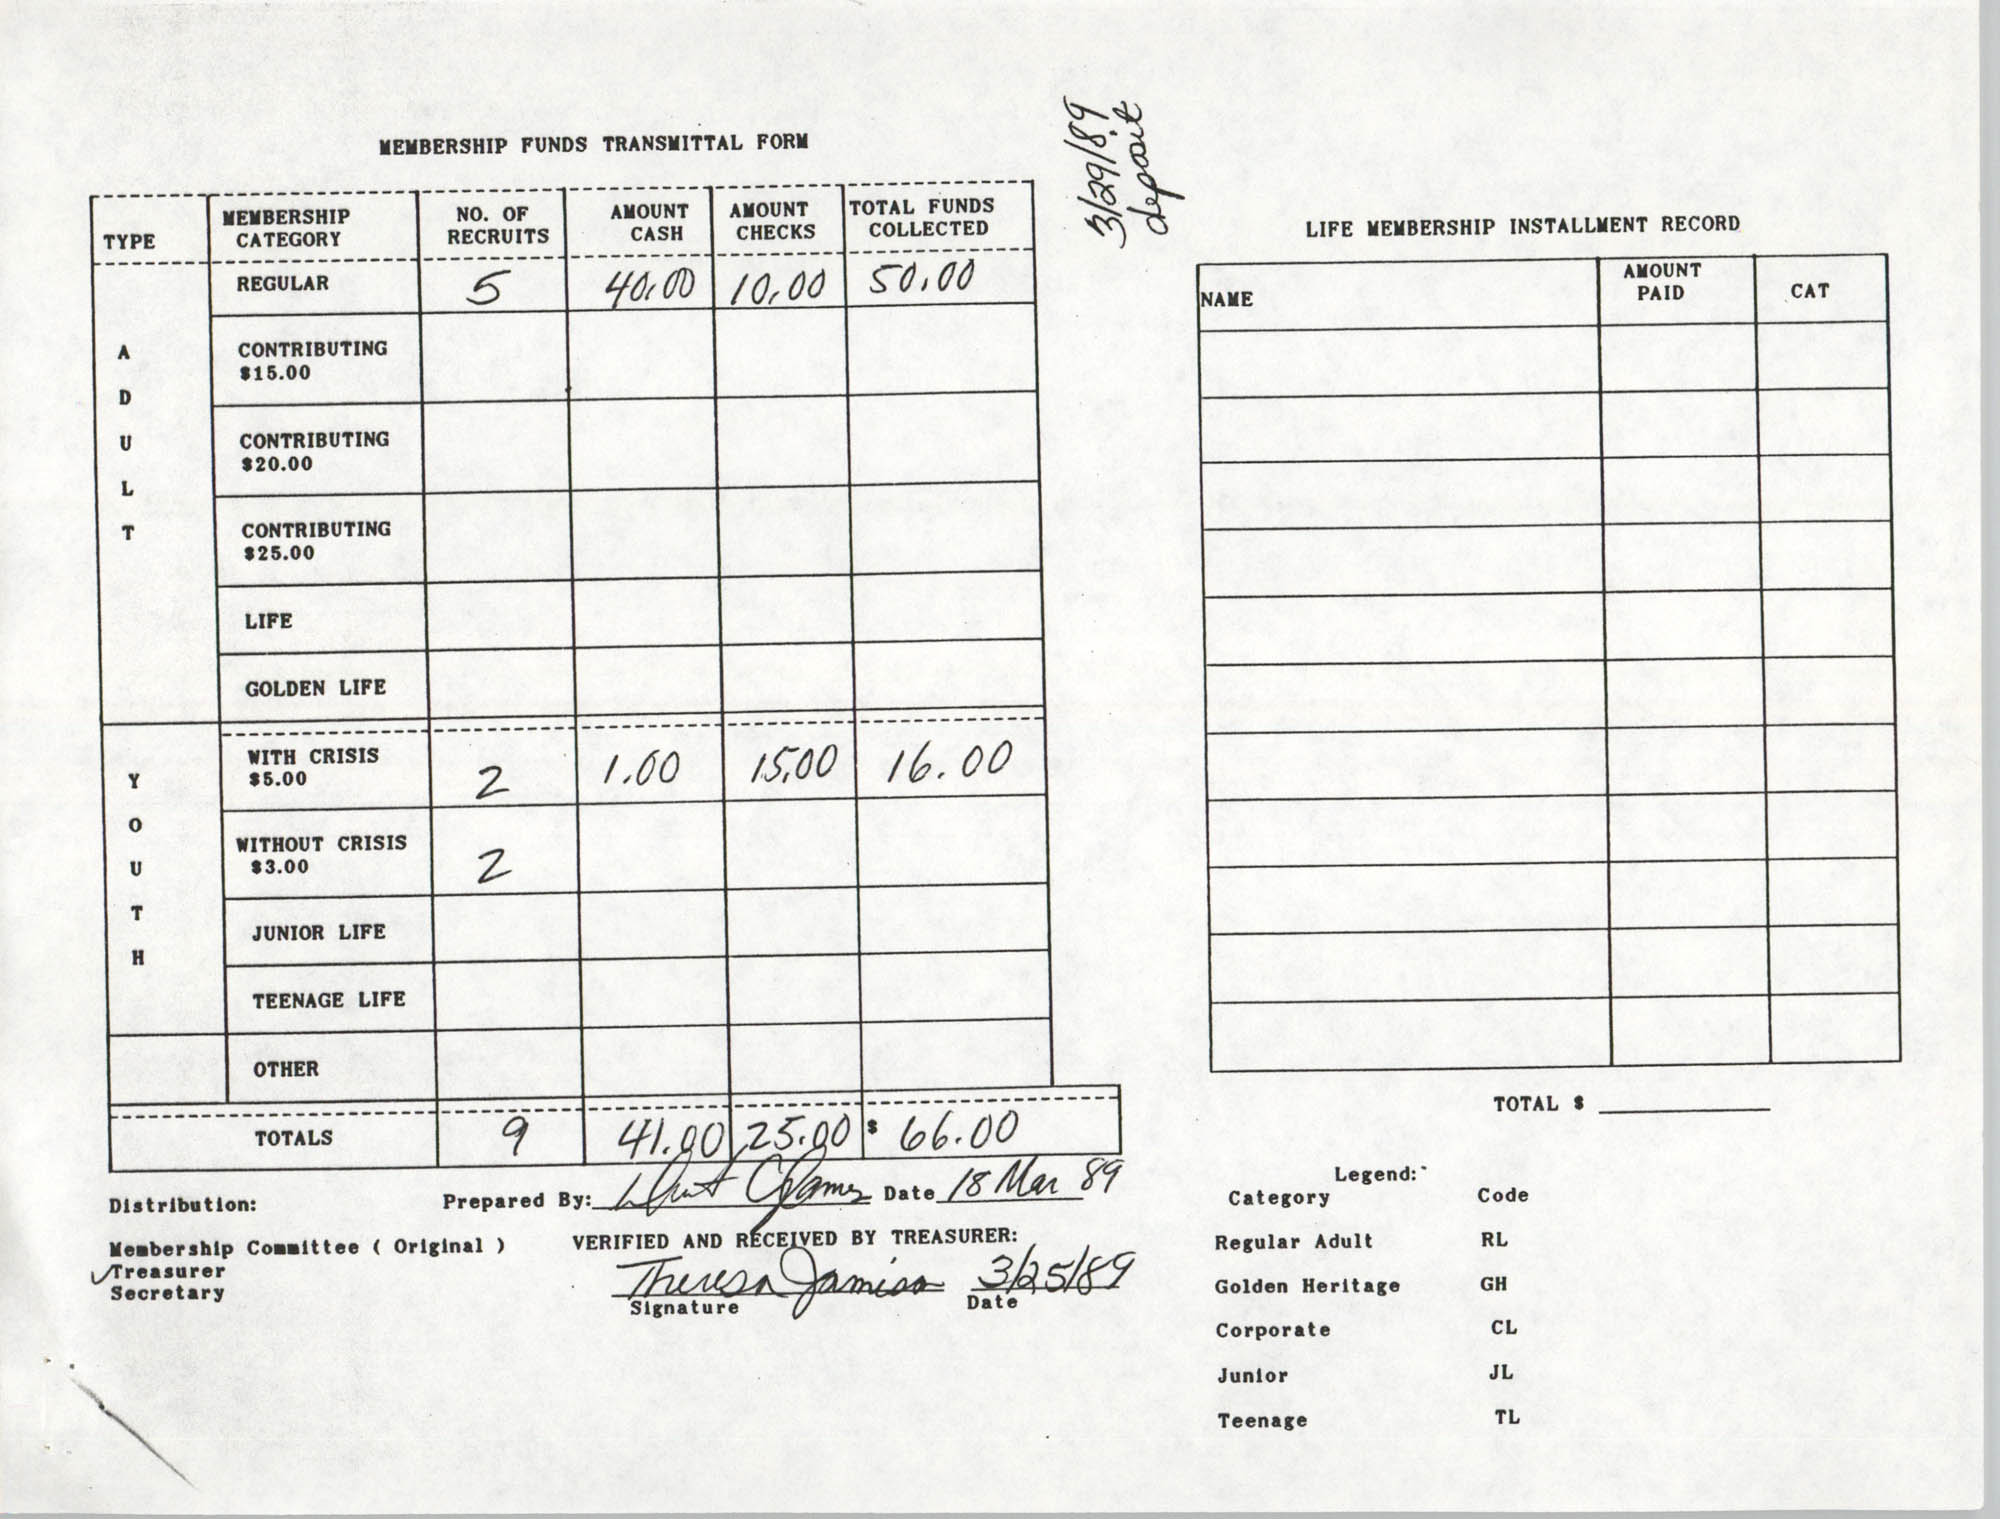 Charleston Branch of the NAACP Funds Transmittal Forms, March 1989, Page 6